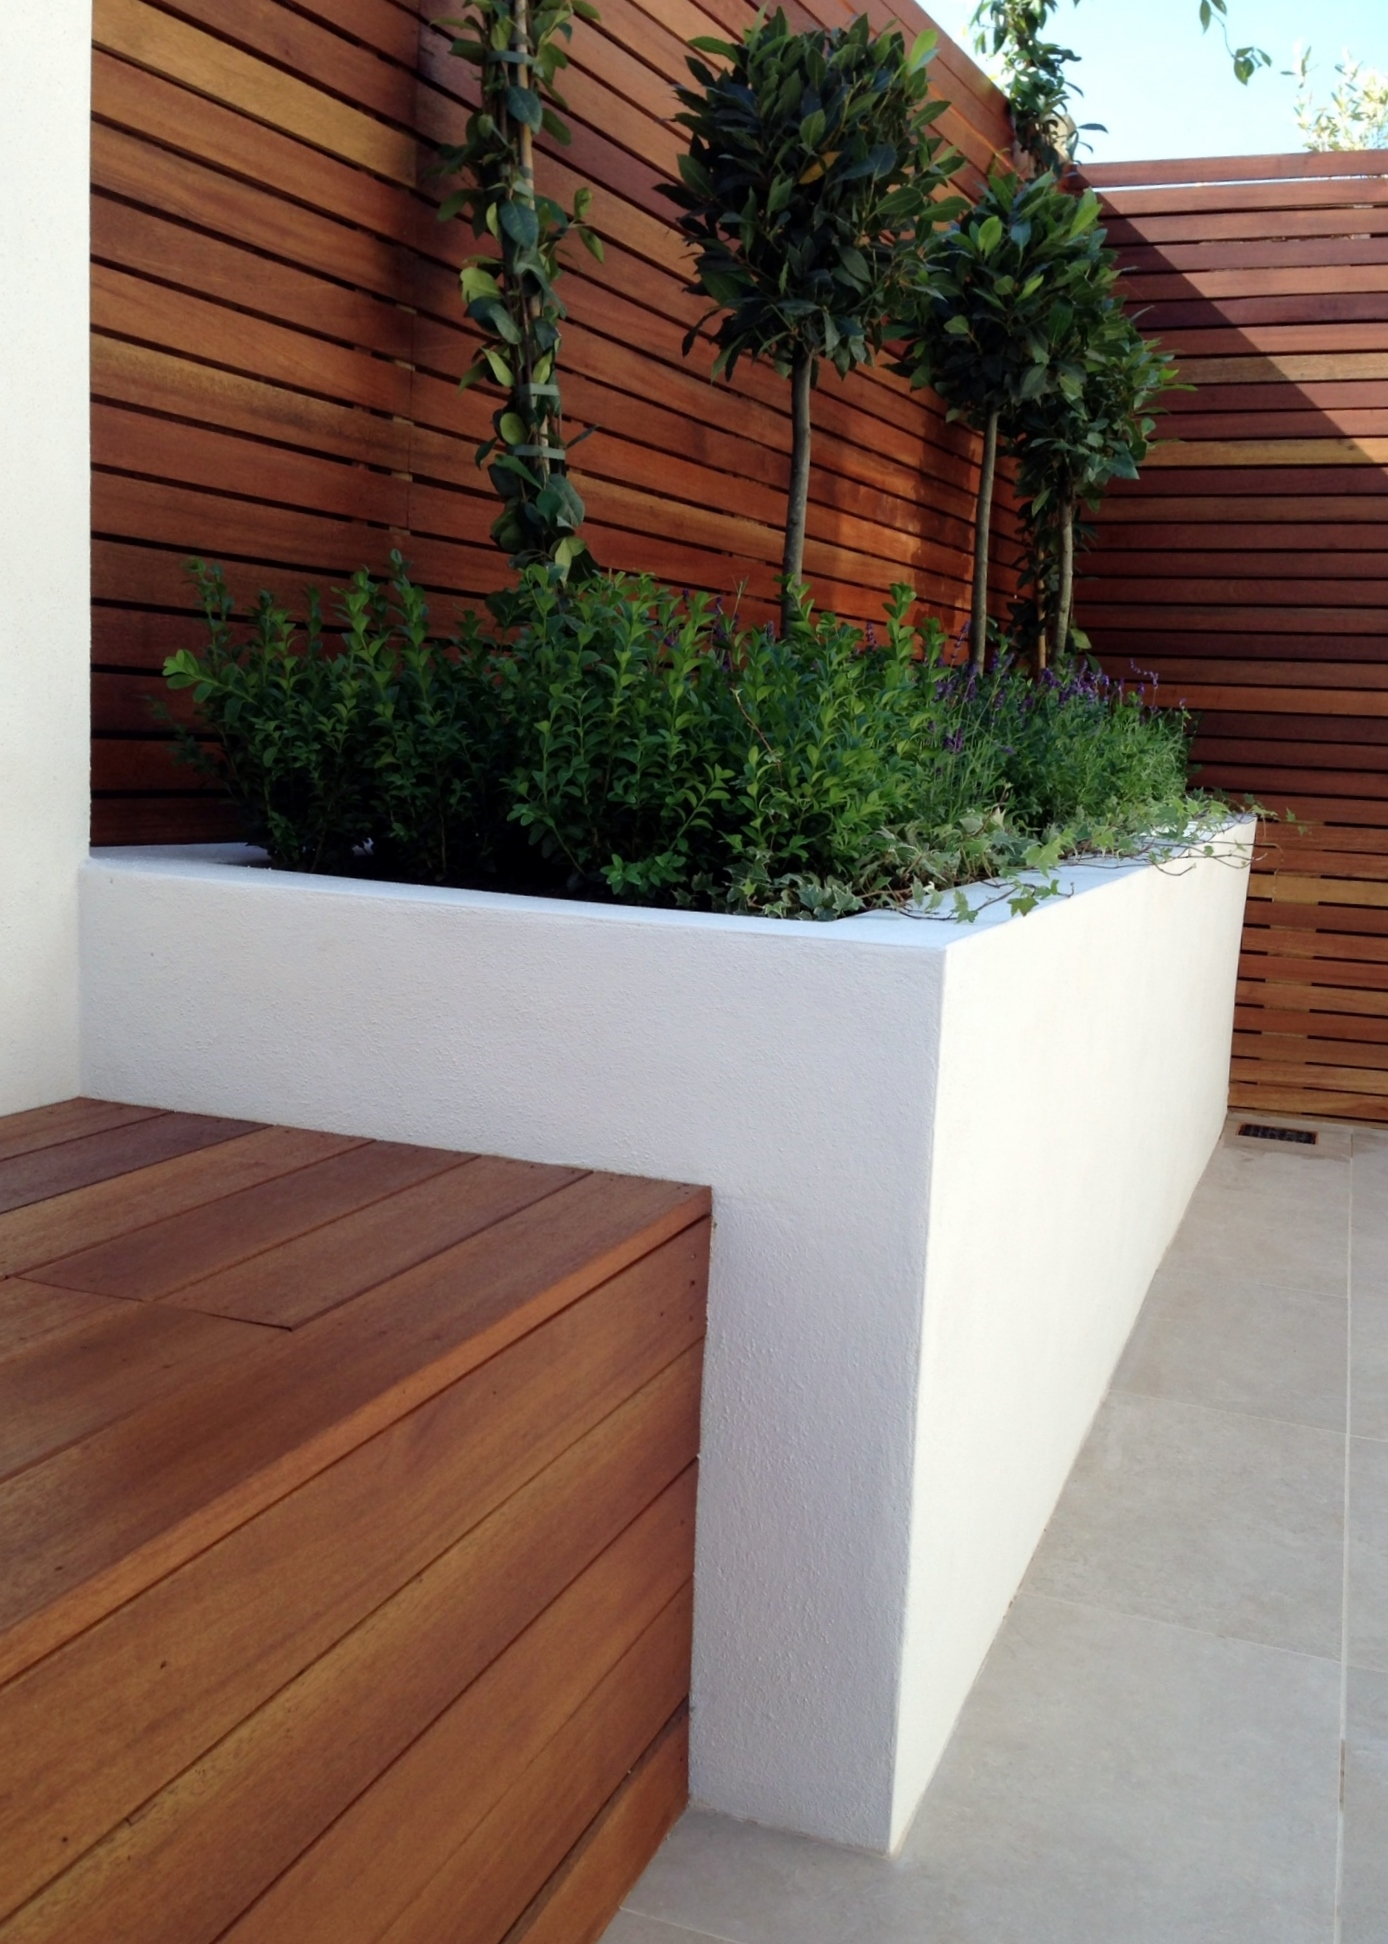 Small modern garden design london garden blog for Images of garden designs